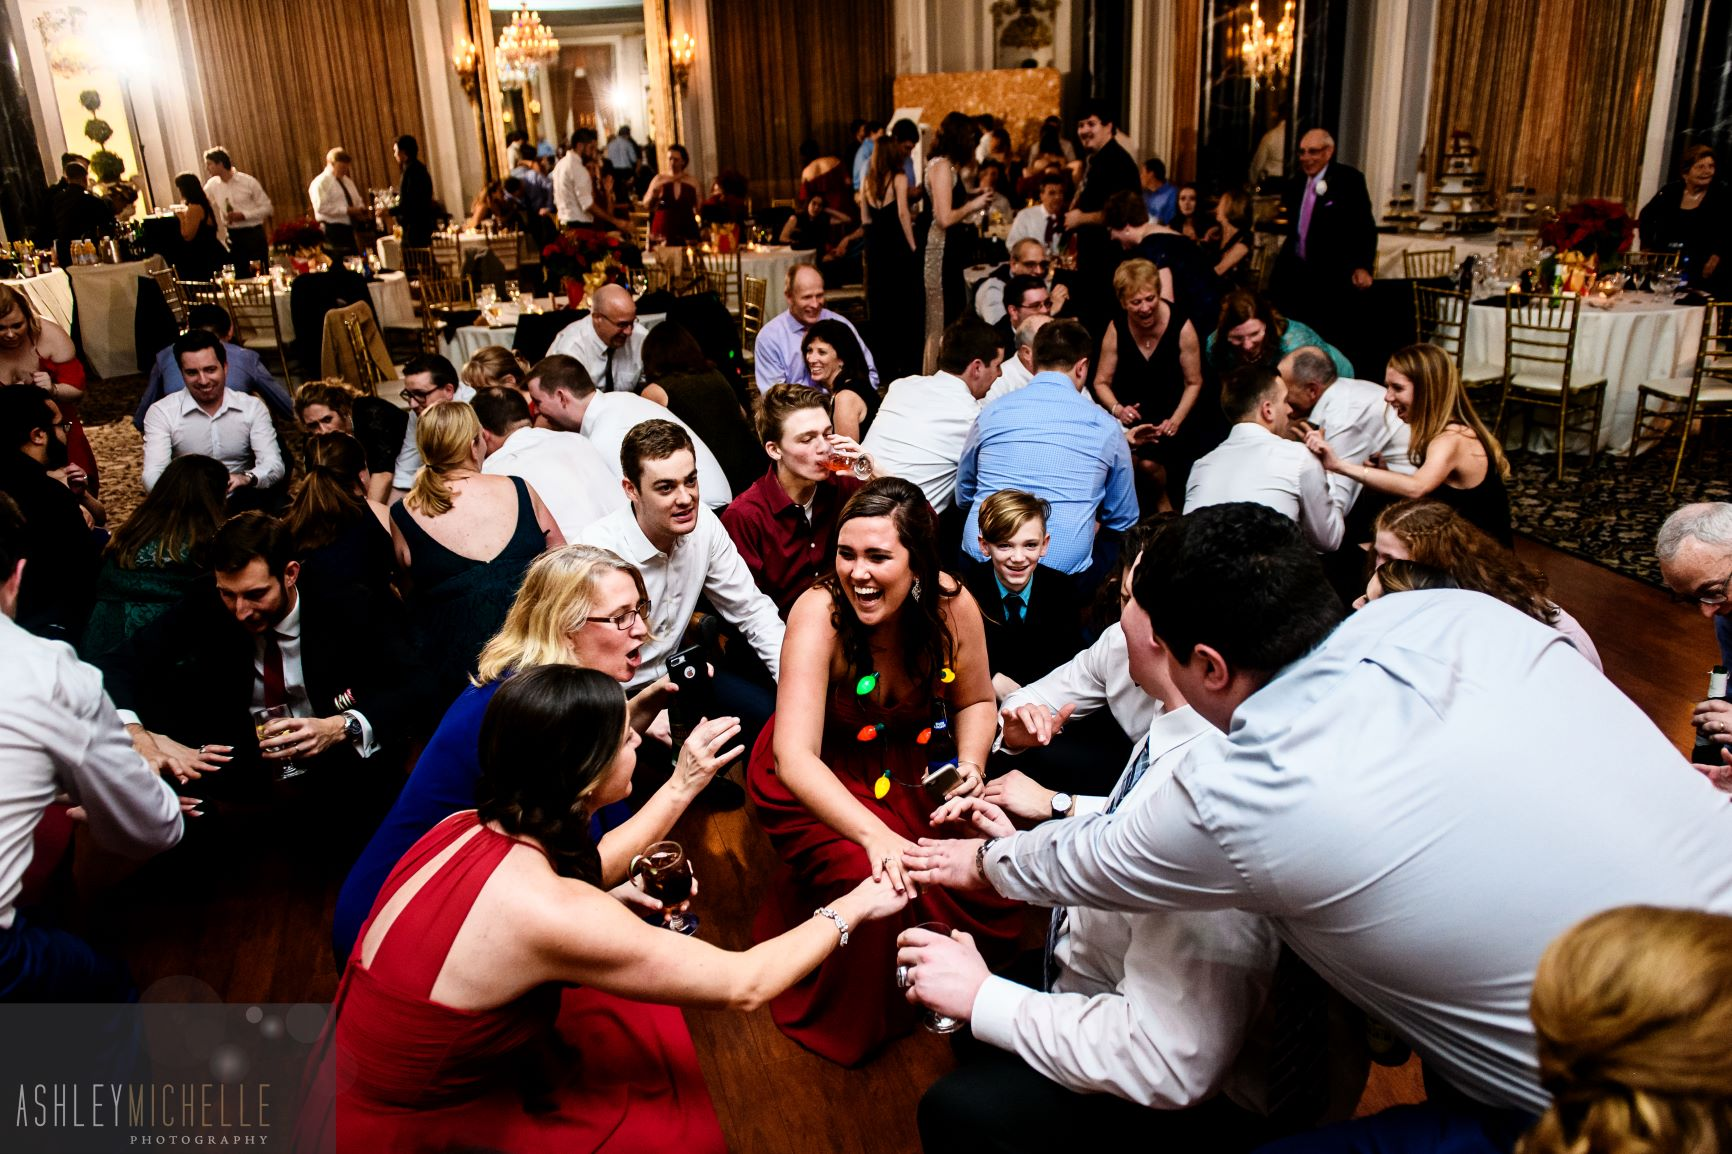 DJ Greyhound provides dj services for weddings in PA, MD, DC, and VA.  Photo courtesy of Ashley Michelle Photography.